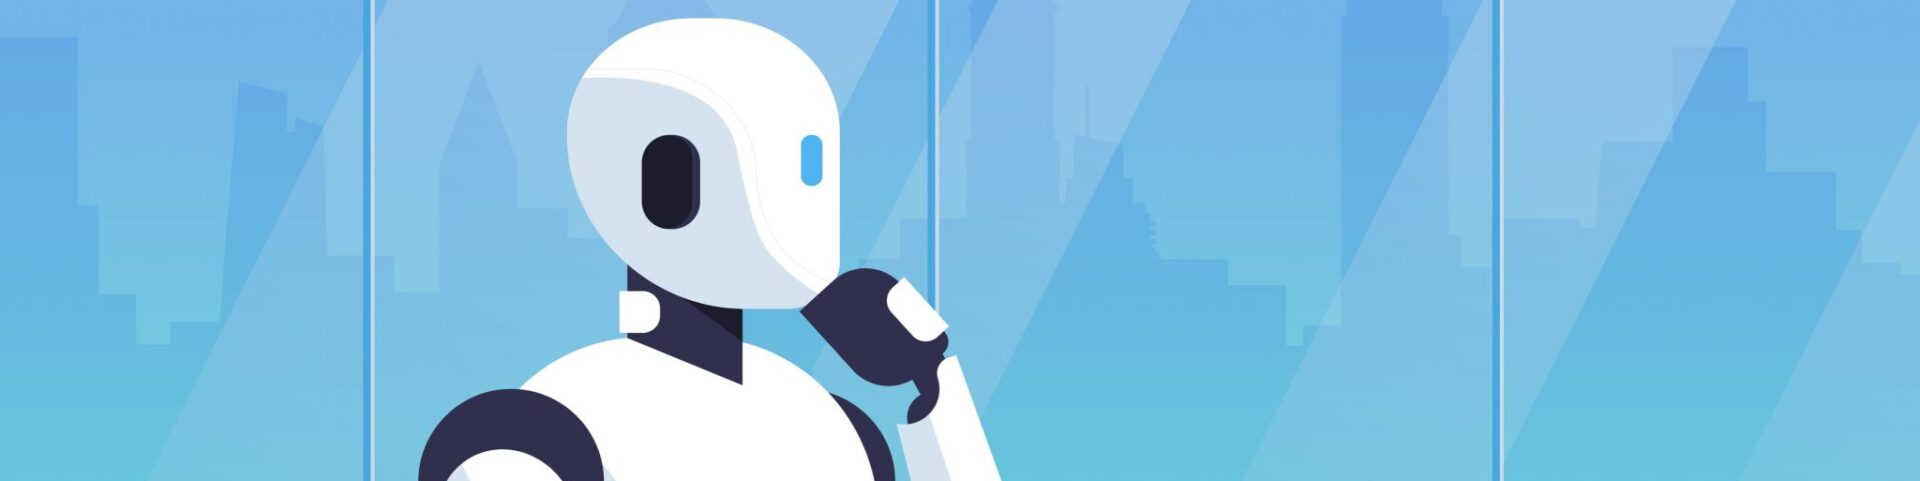 Illustration of a humanoid robot with its hand on its chin, demonstrating how machines learn